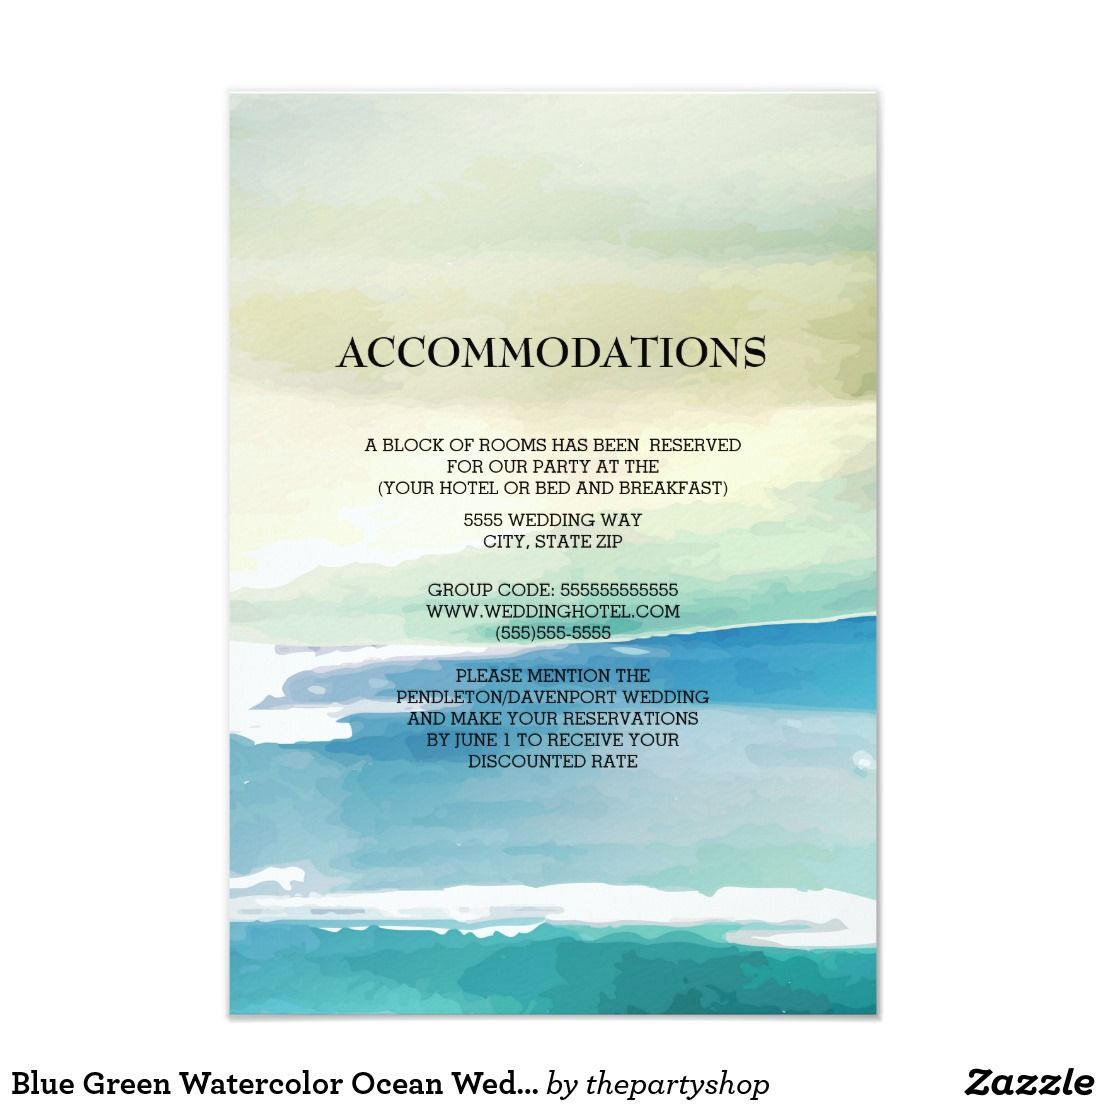 Blue And Green Watercolor Ocean Waves Wedding Accommodations